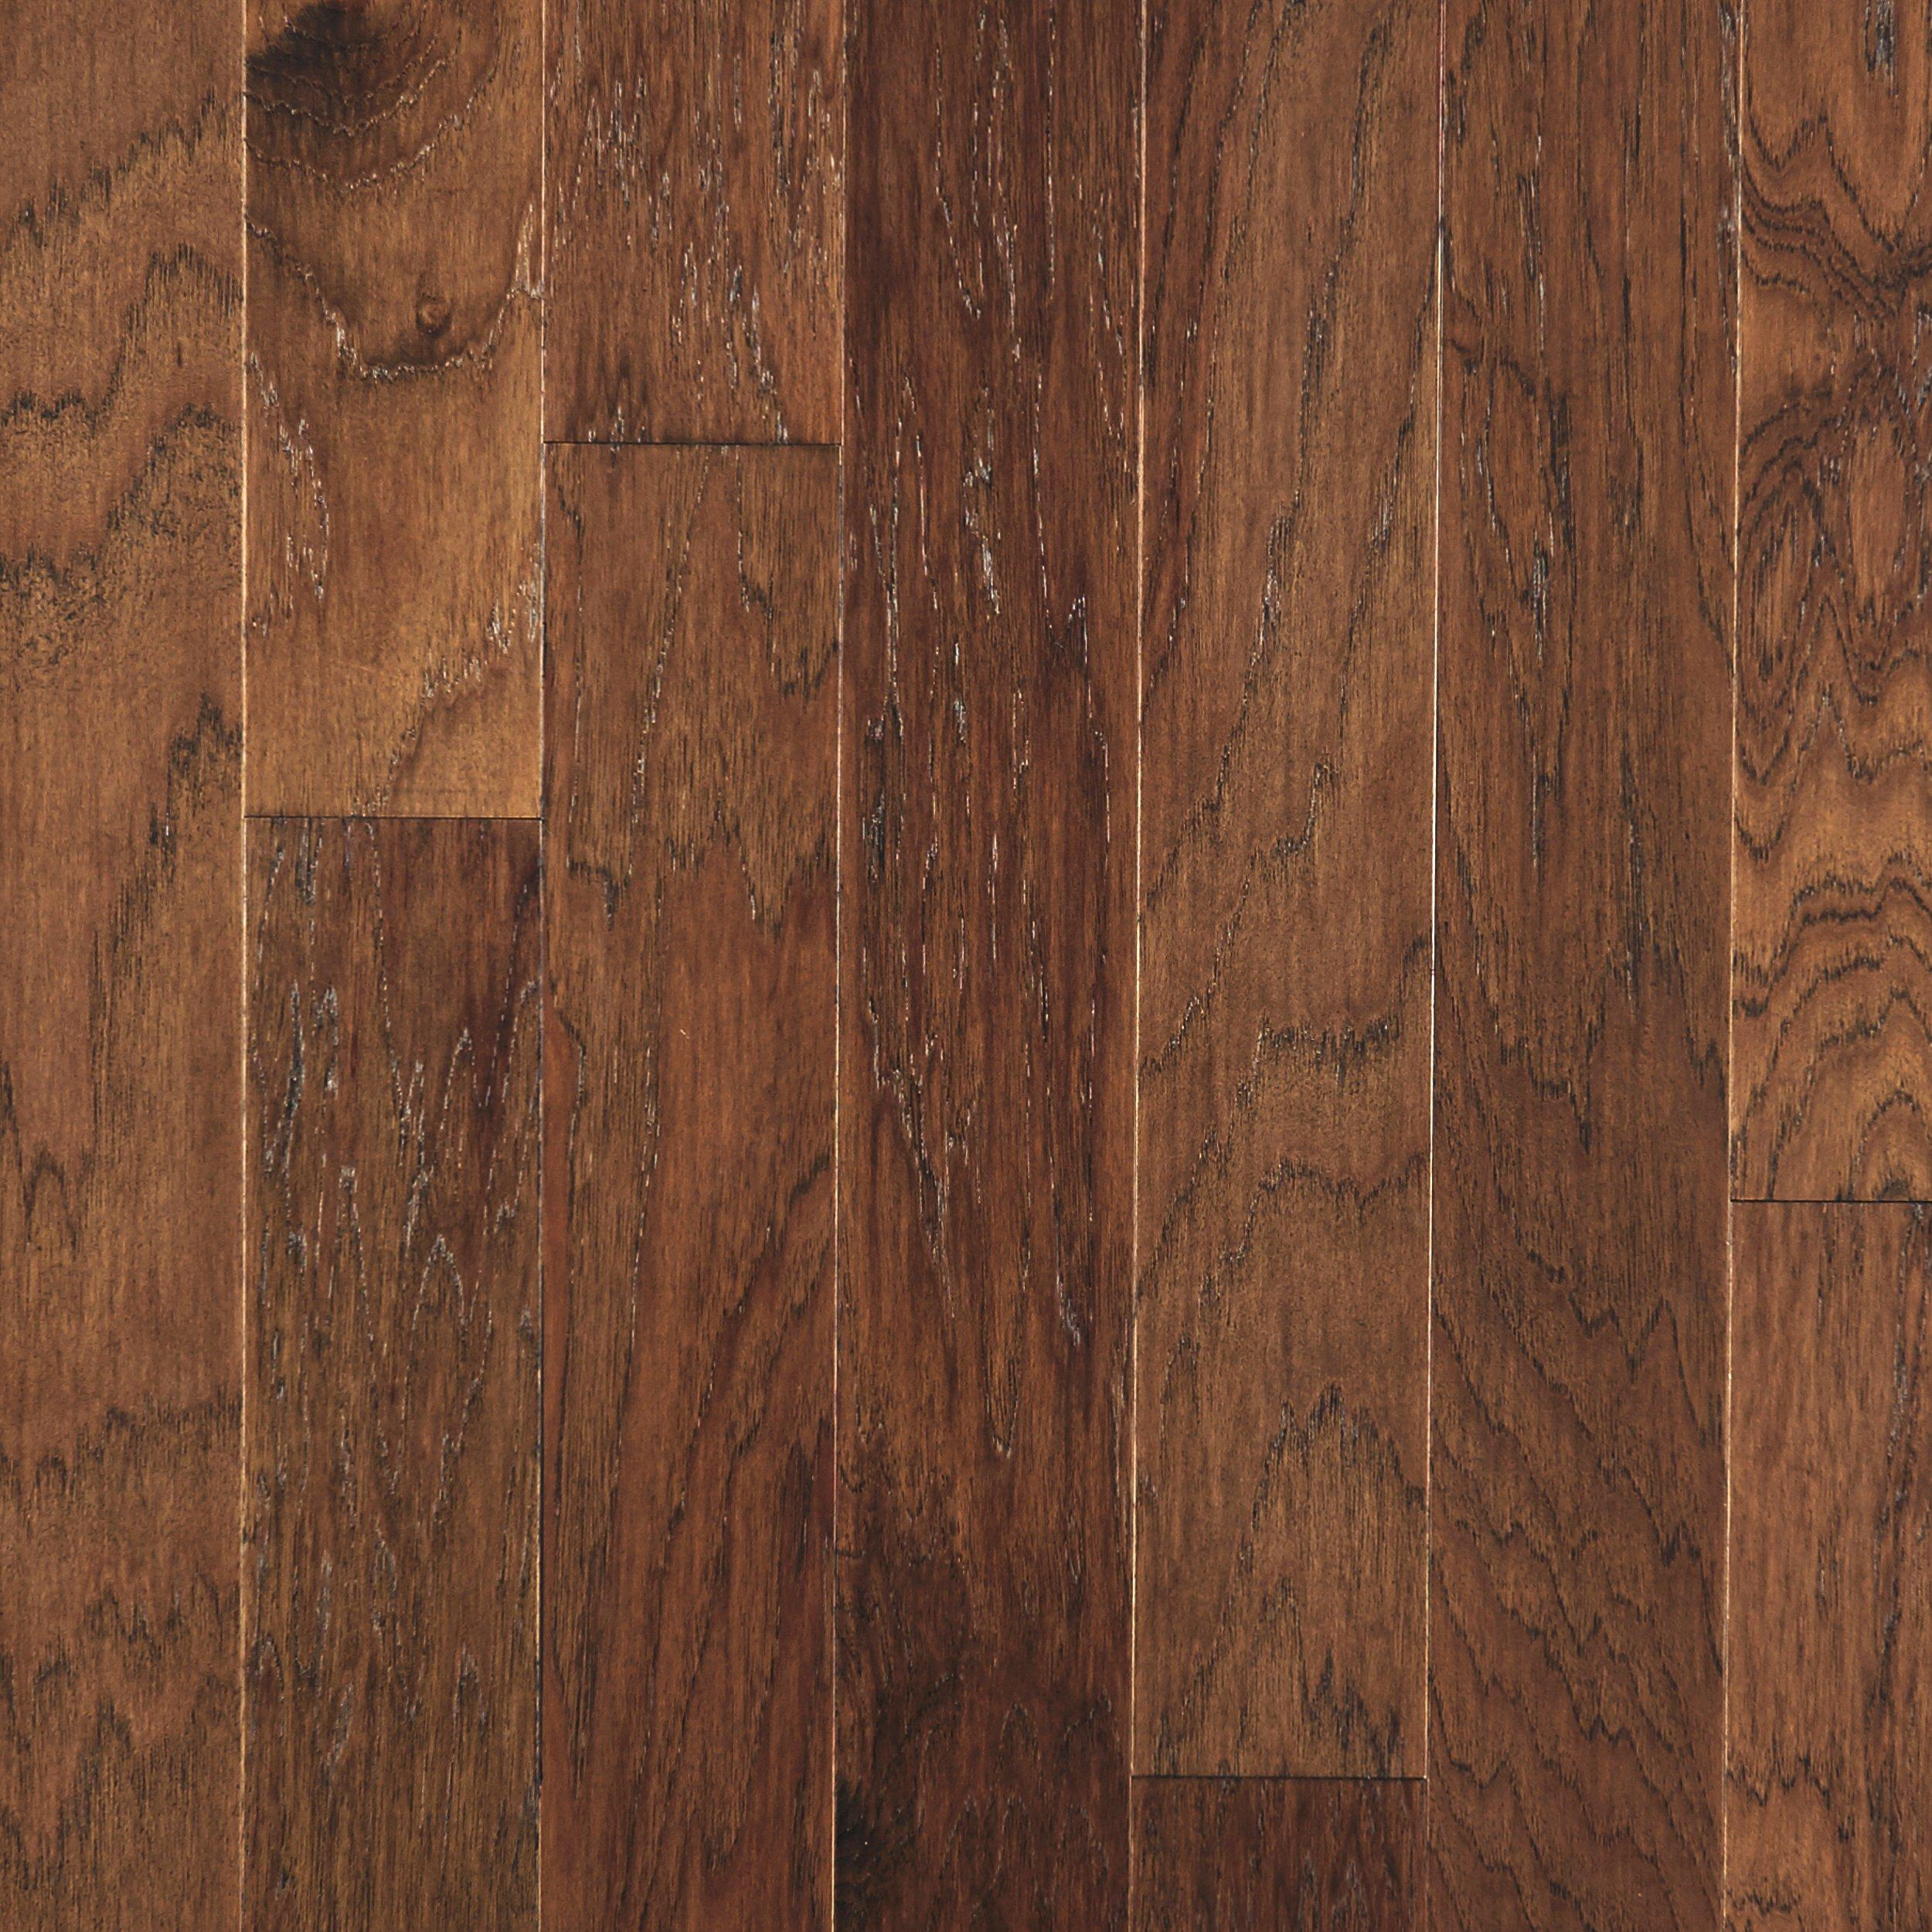 engineered hardwood floor u0026 decor